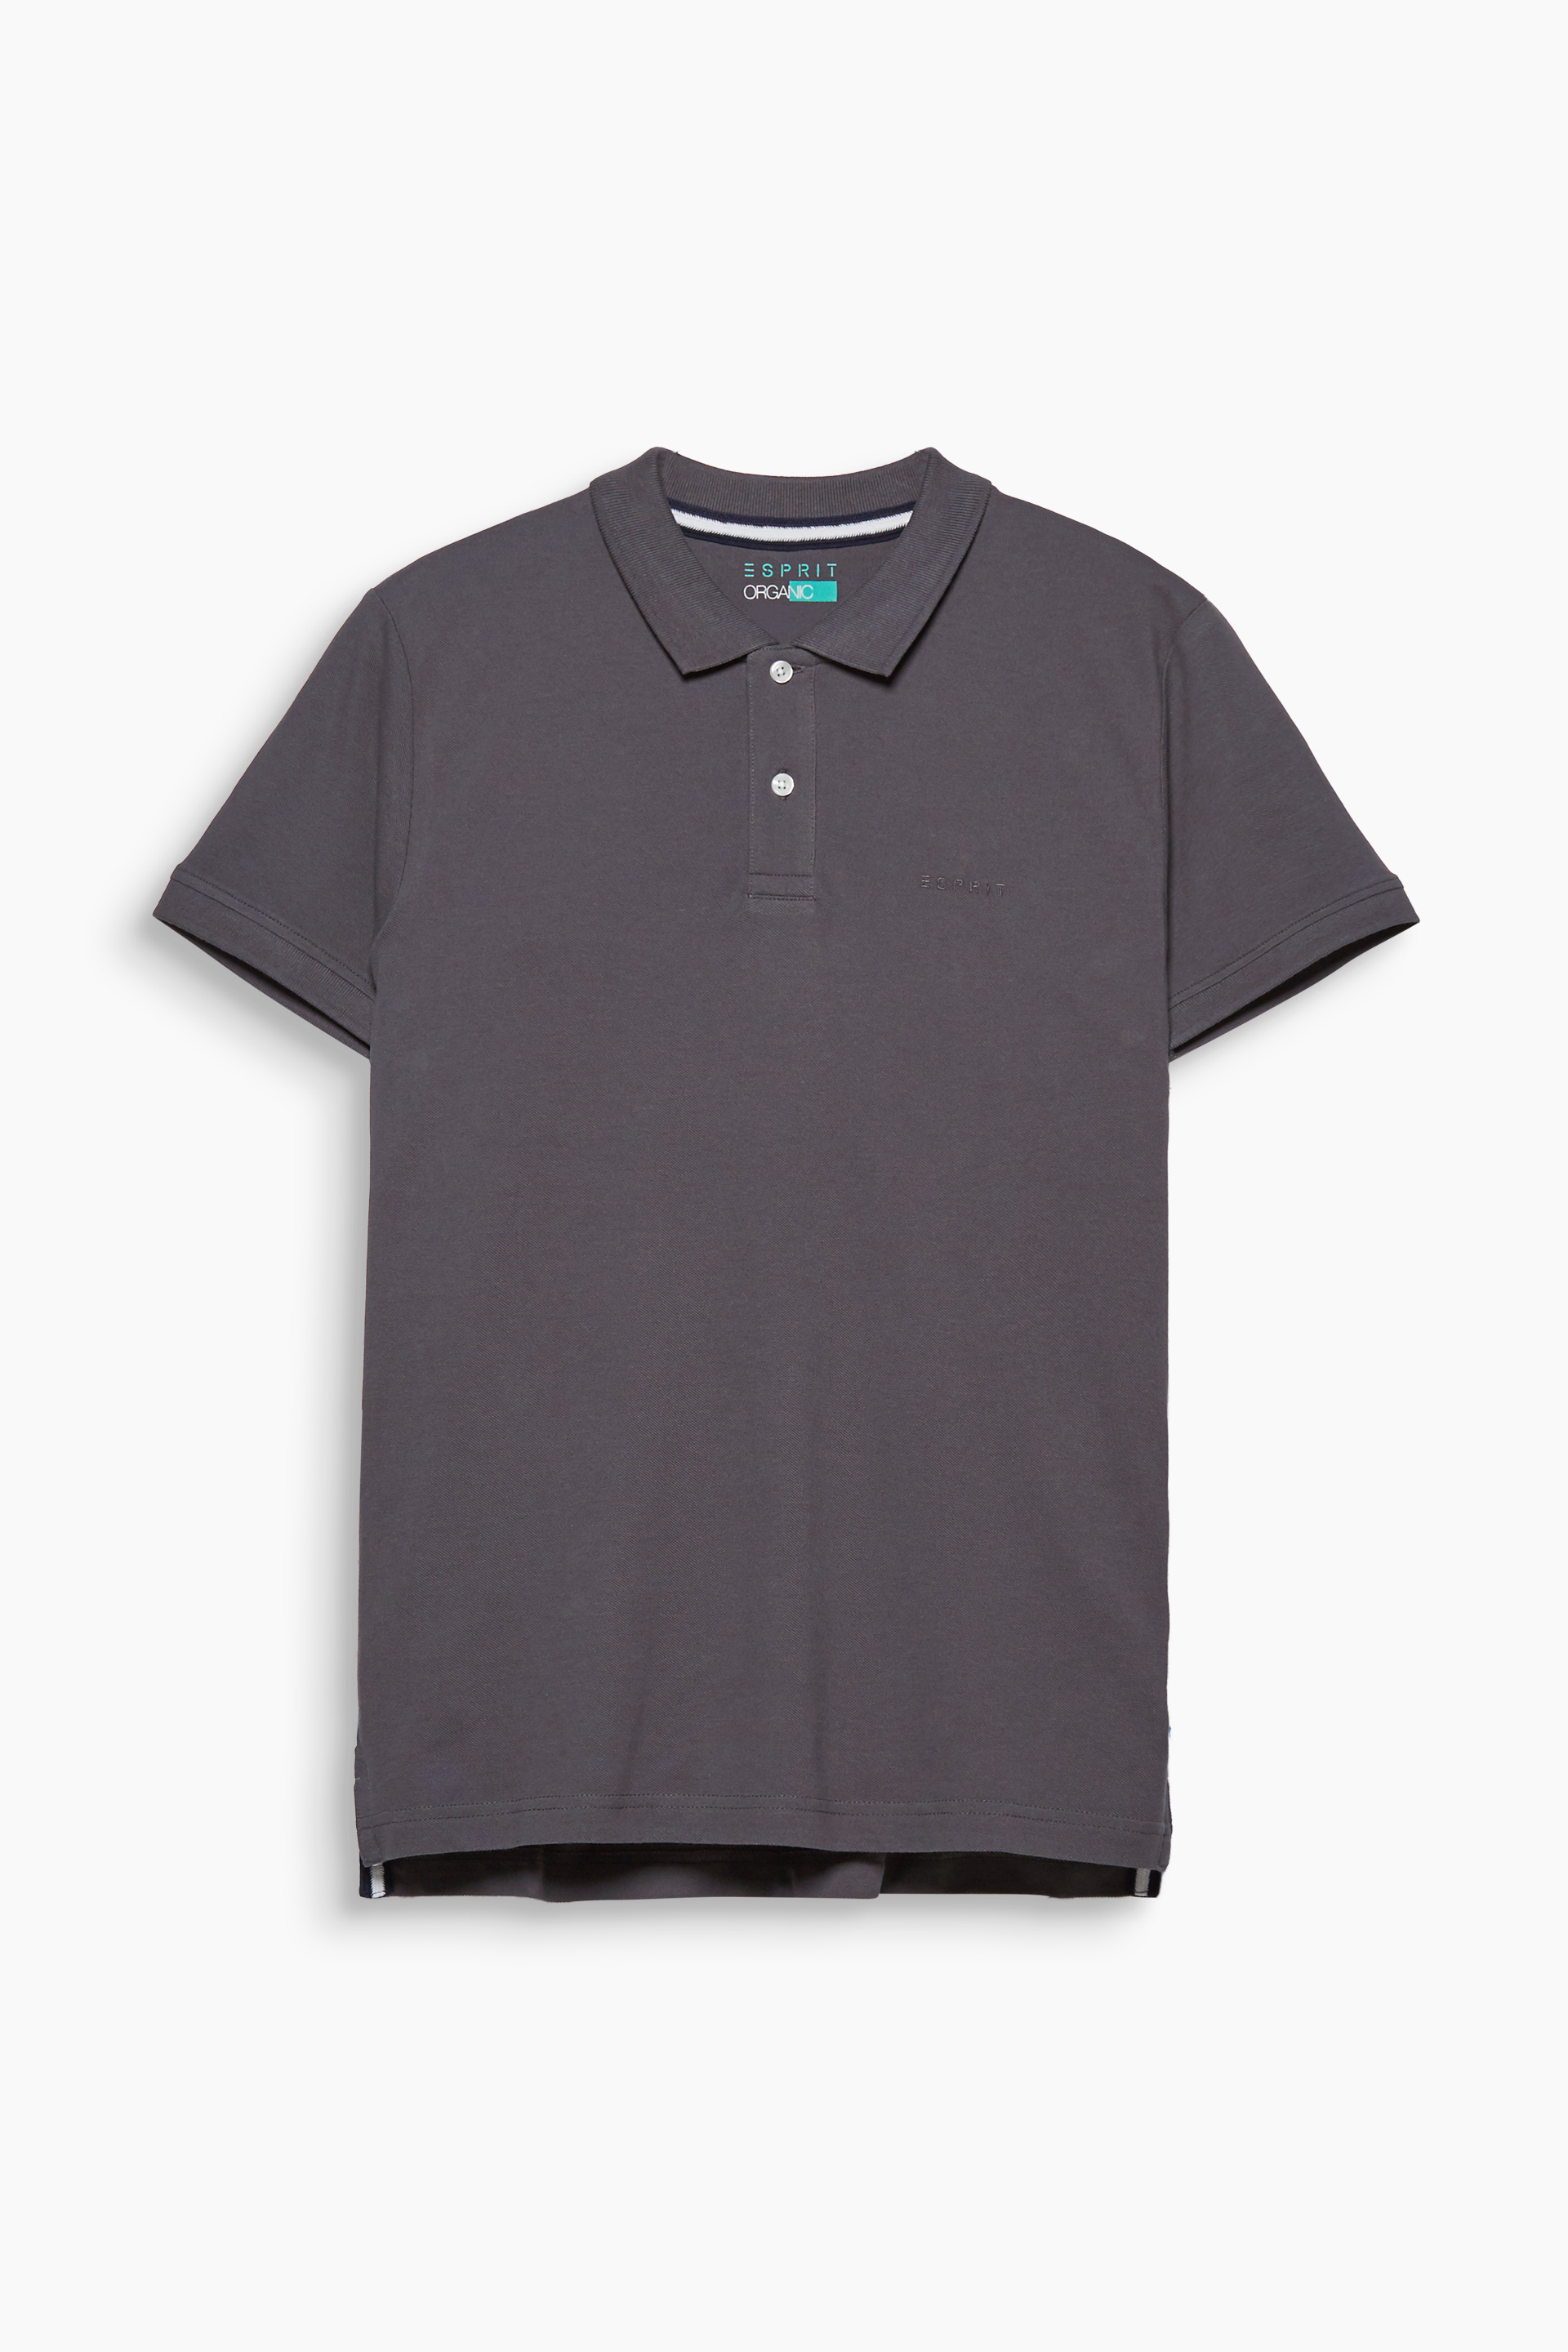 Esprit Dark Grey 020 Dark Grey Slim Polo T-shirt